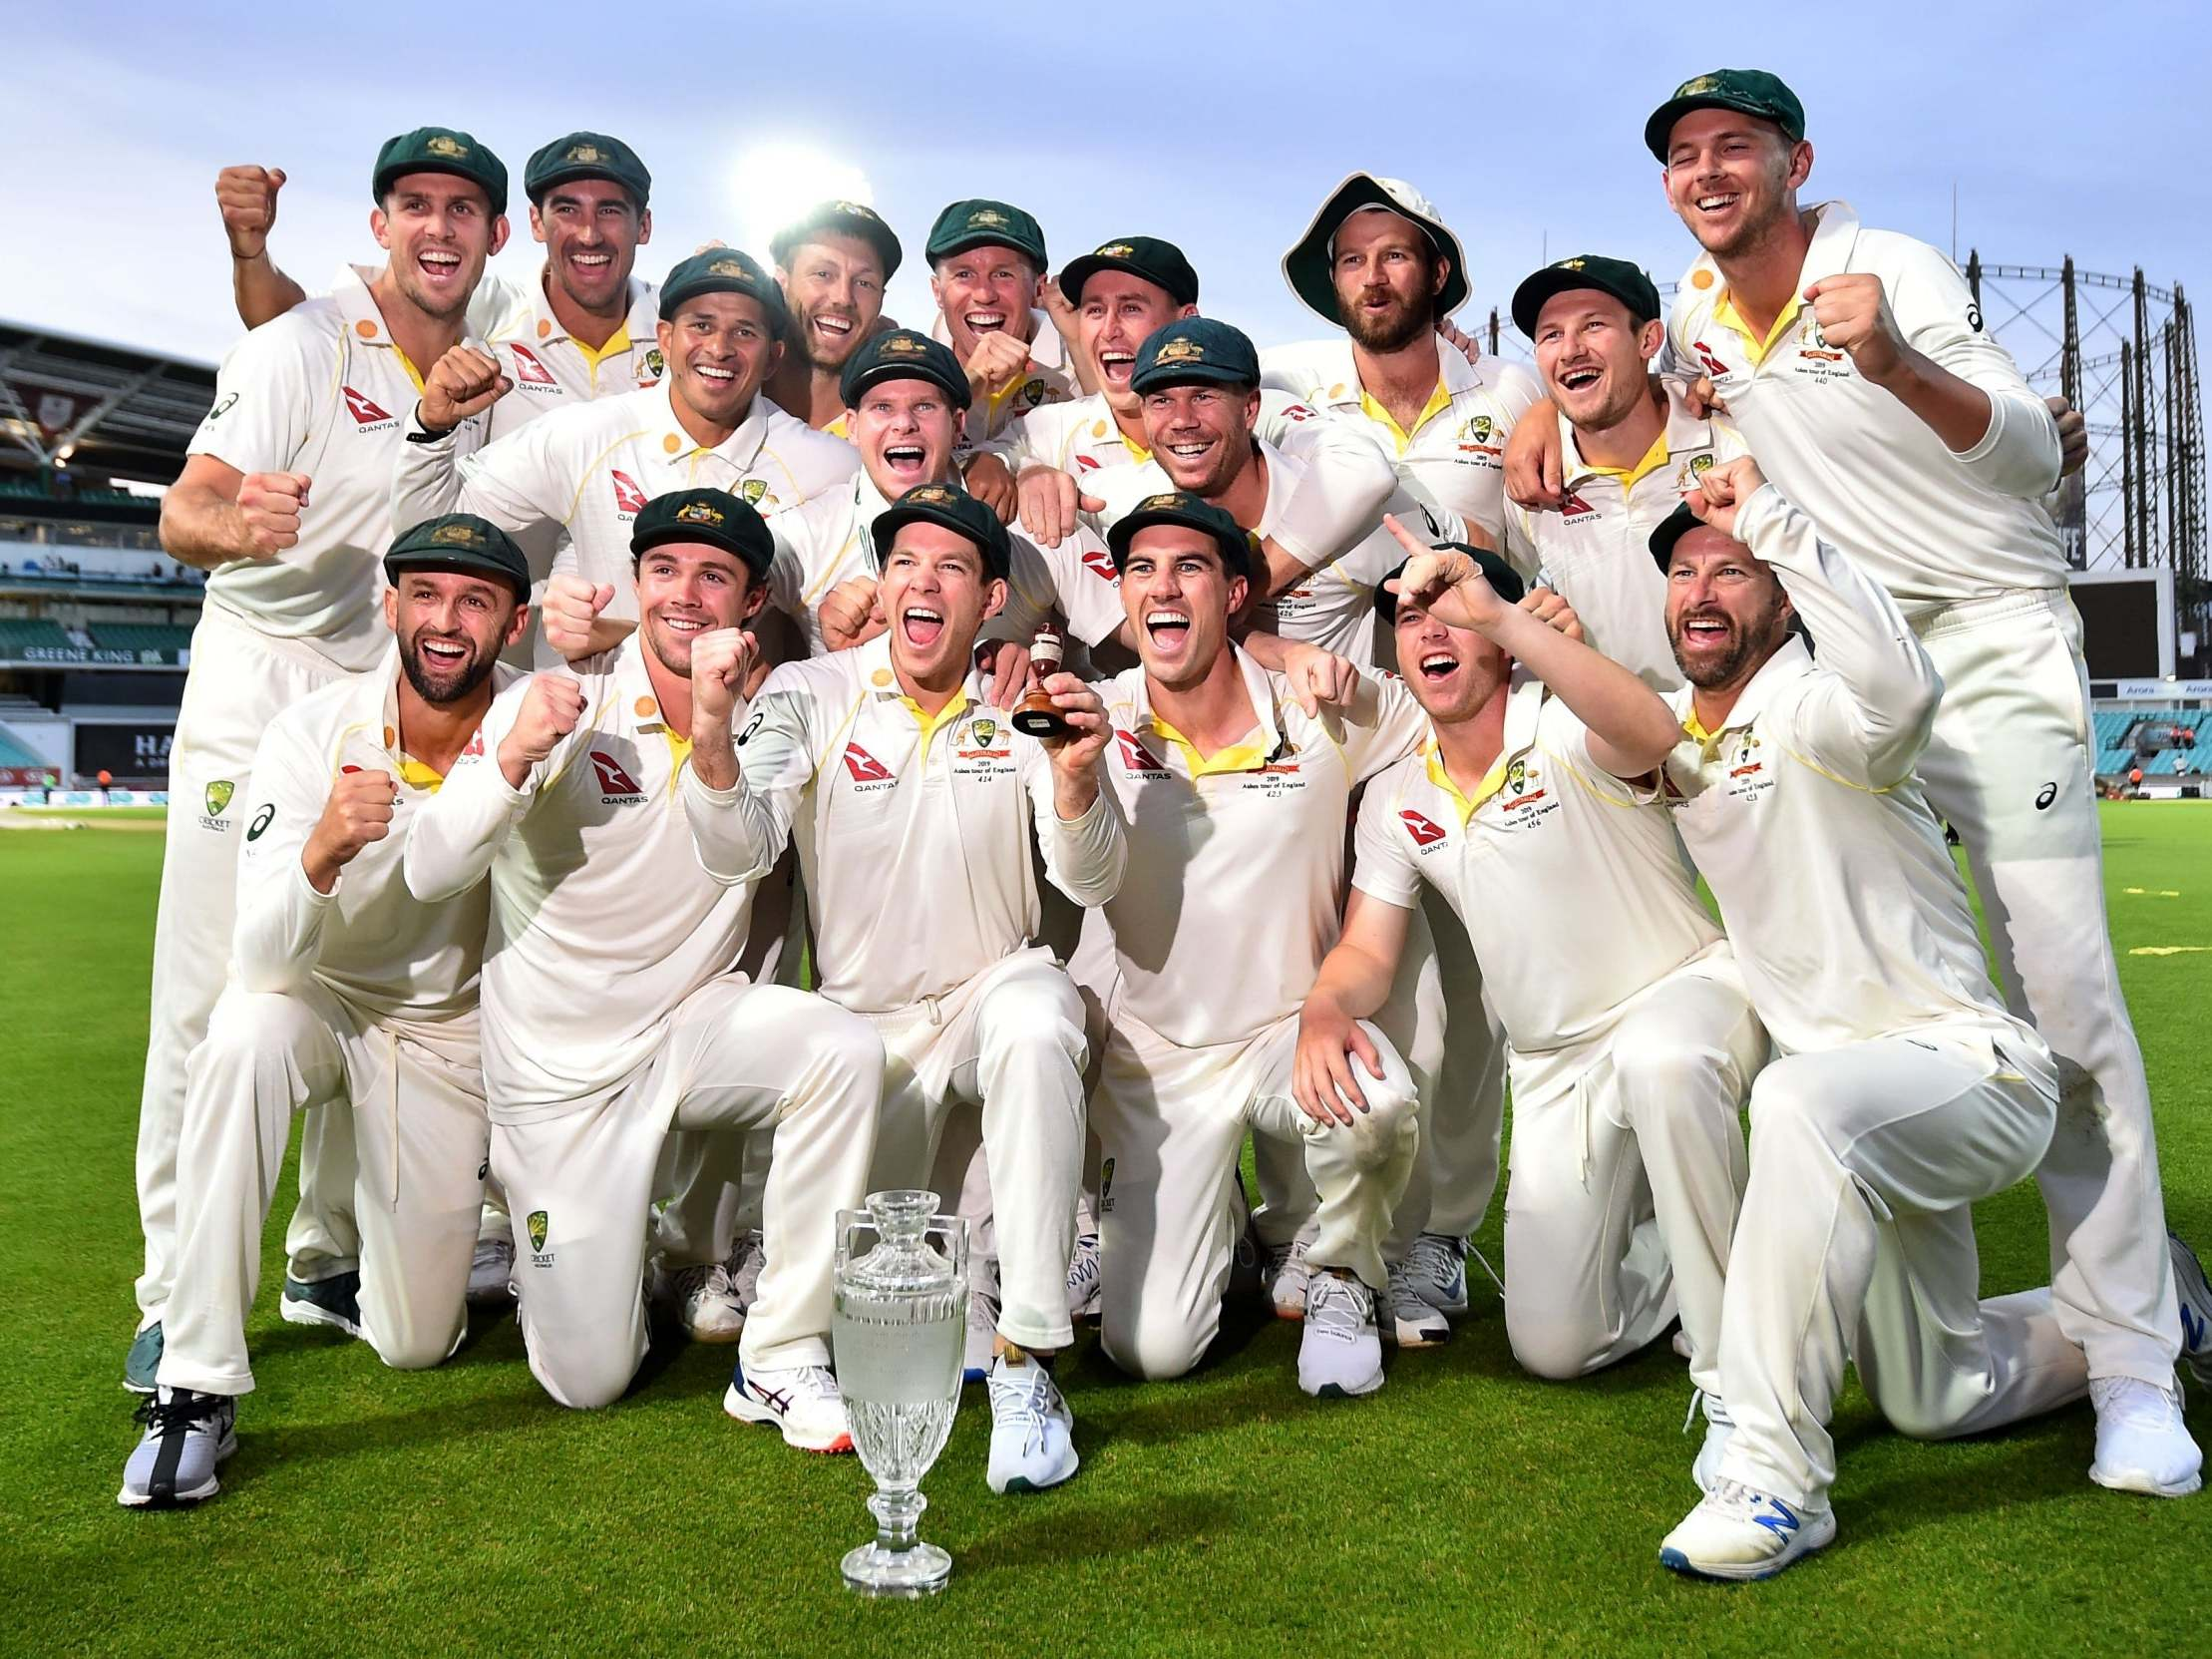 Ashes 2019: Australia return home with the trophy they cherish most – so what next?